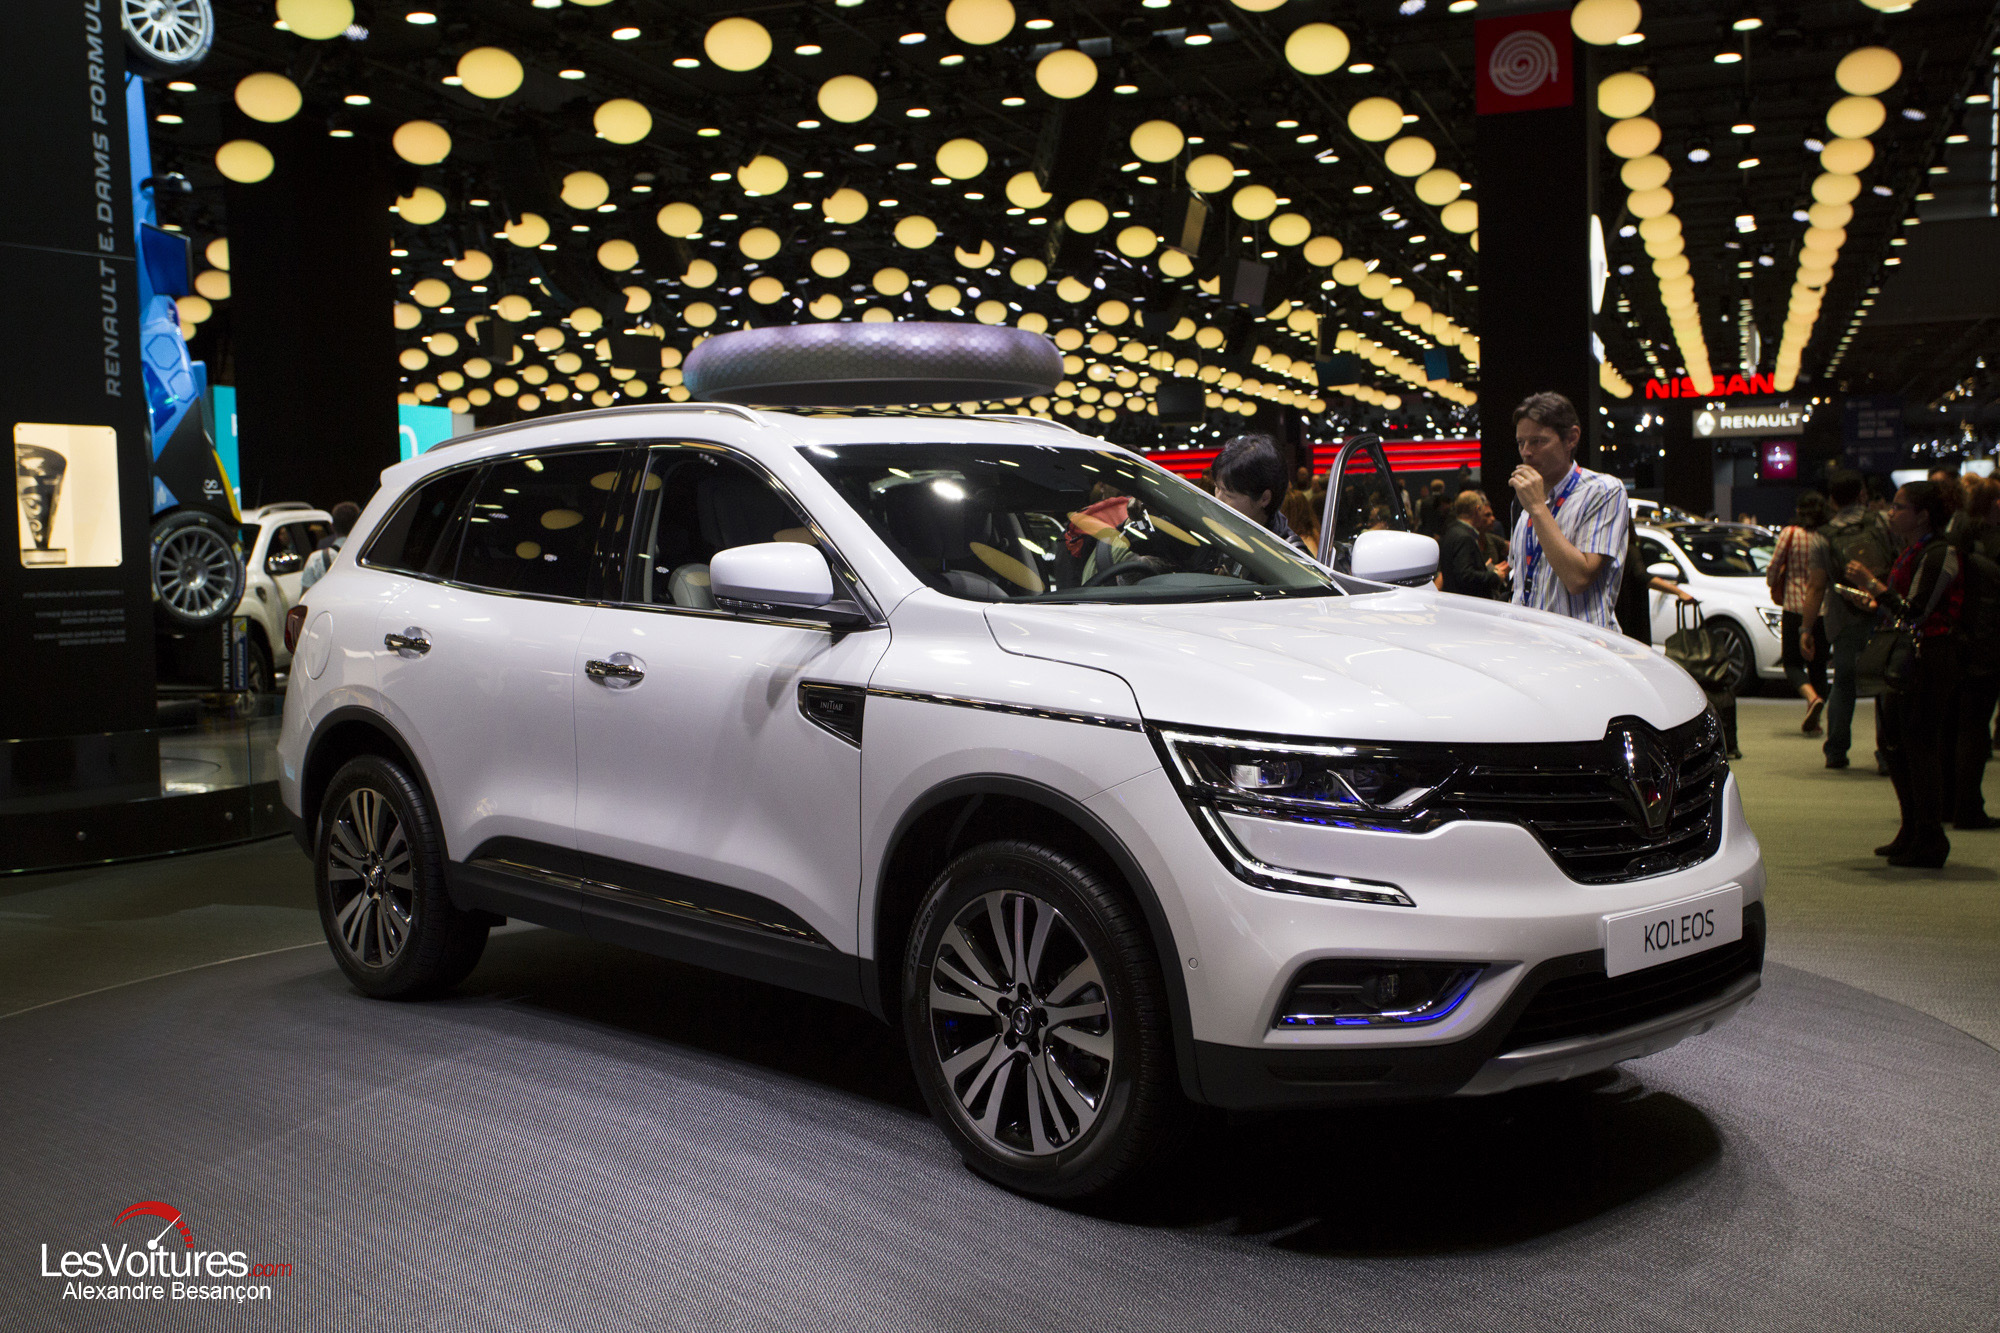 renault koleos le nouveau grand suv fait sensation au mondial de l automobile les voitures. Black Bedroom Furniture Sets. Home Design Ideas